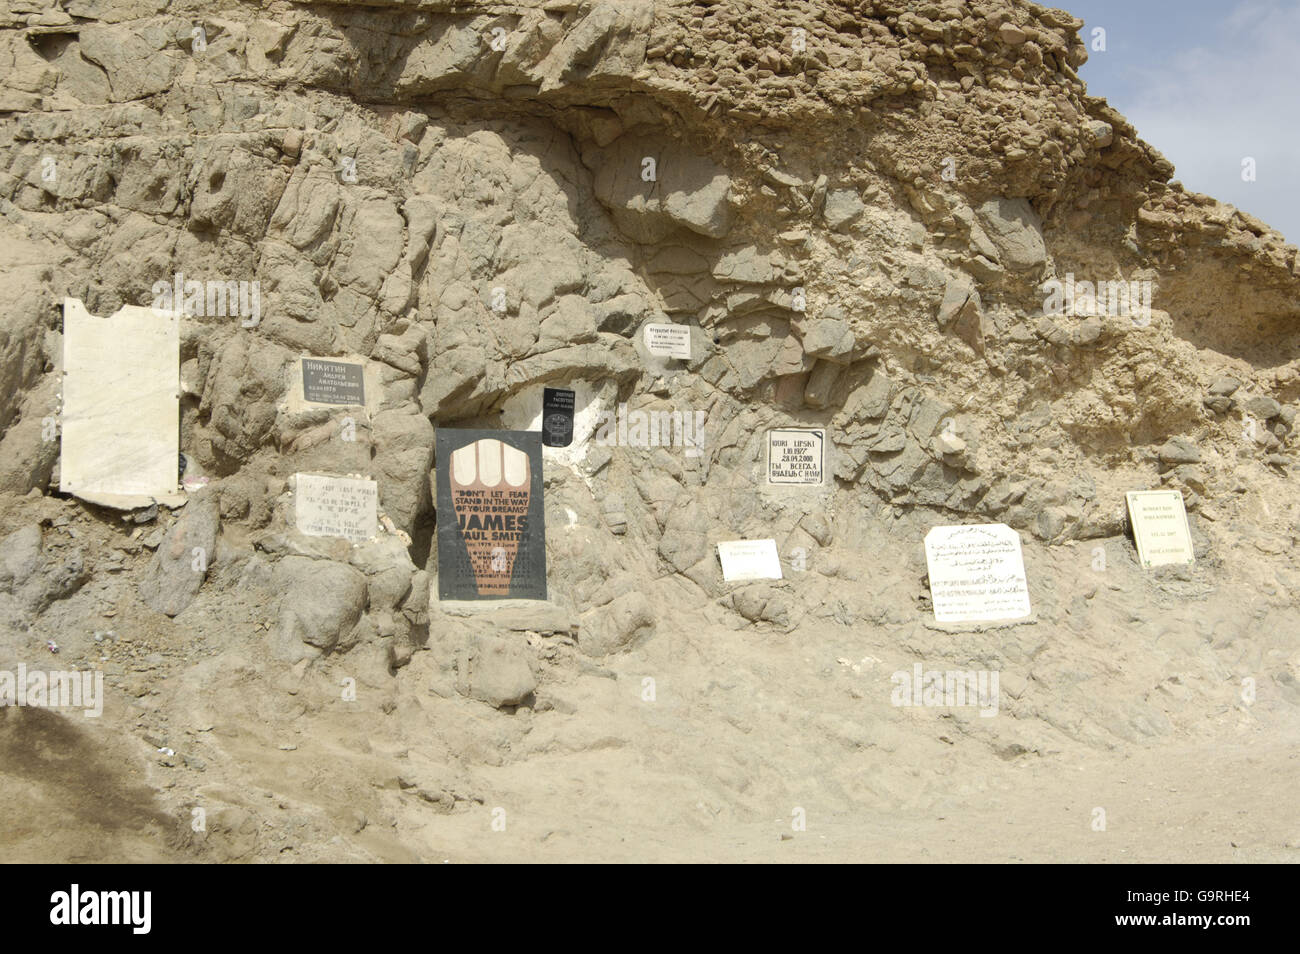 Commemorative plaques for divers killed by accident, Blue Hole, Dahab, Sinai Peninsula, Egypt - Stock Image